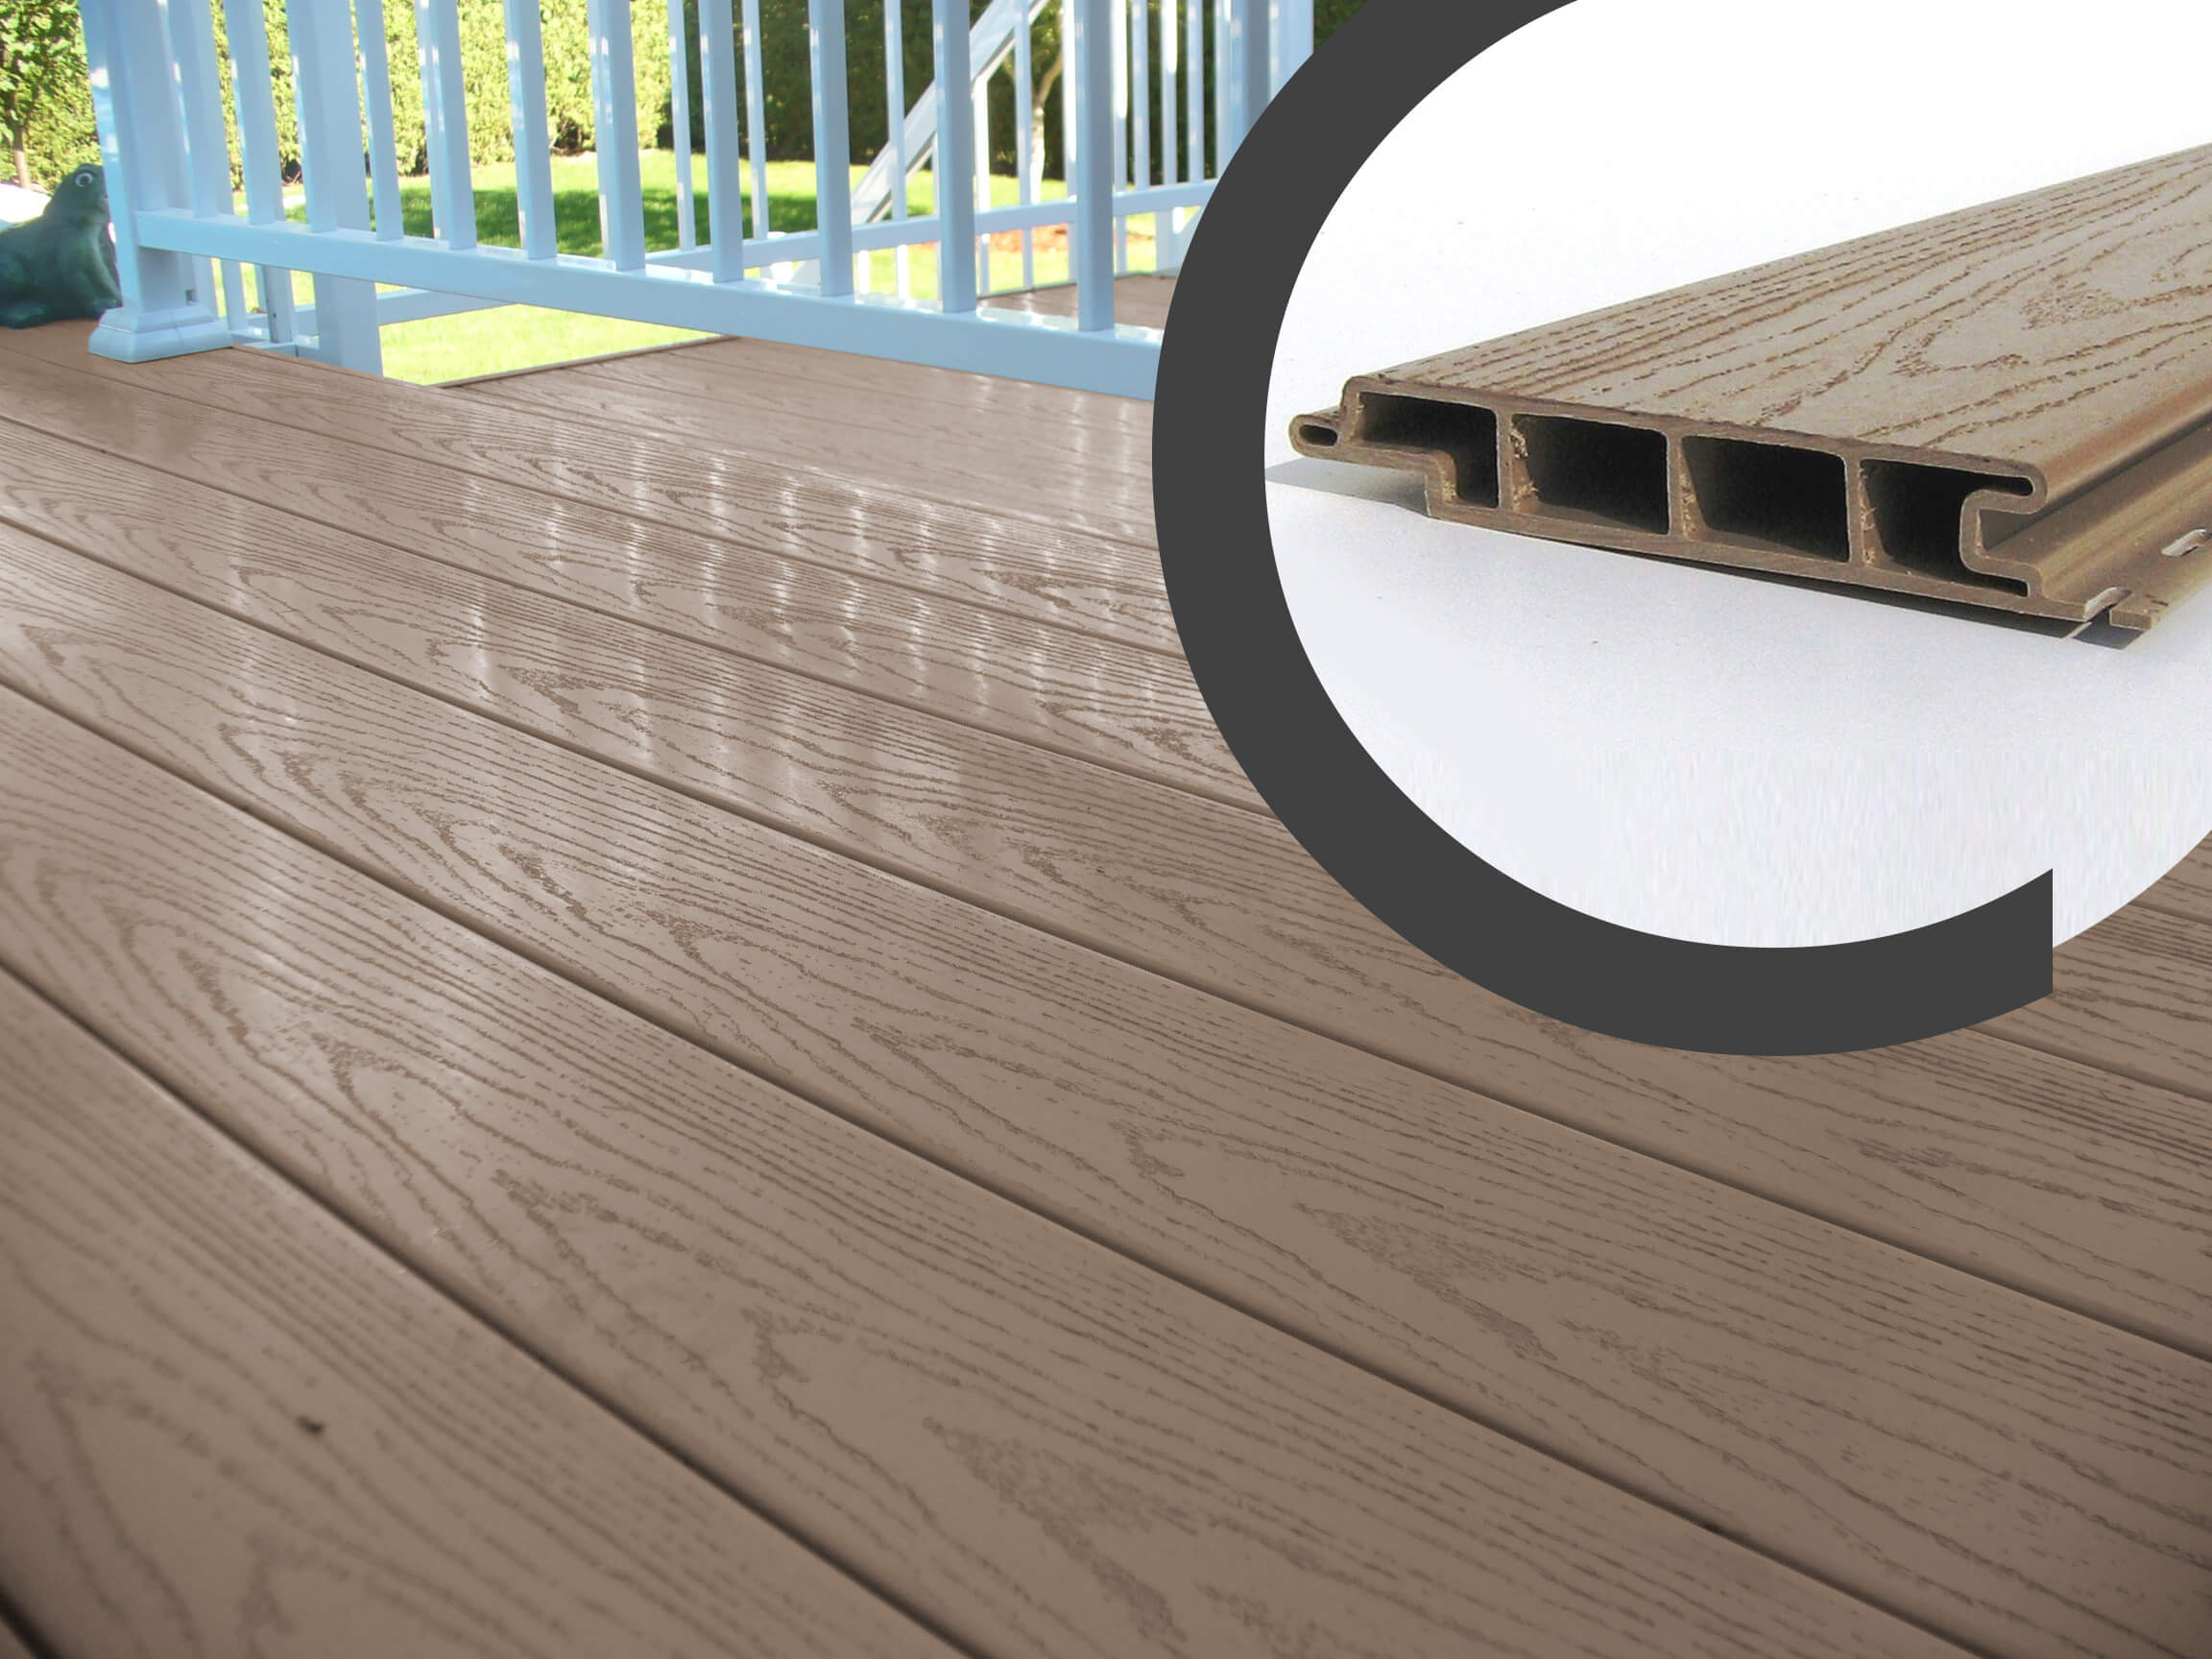 decking for floor guide cool a choosing pvc vs flooring or materials deck ideas wood to your composite